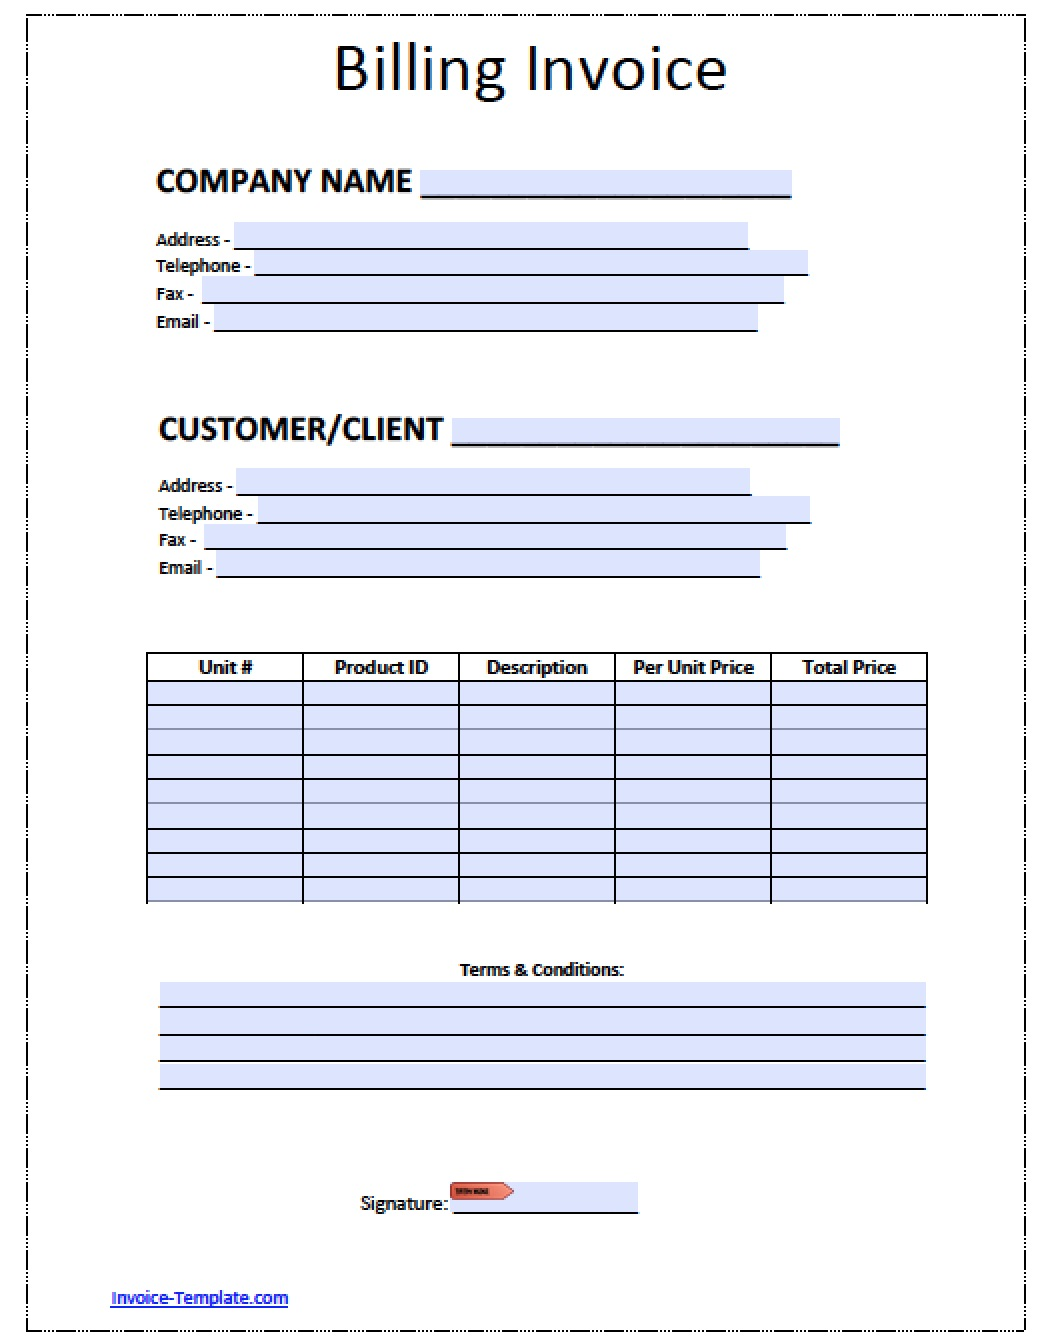 Free Billing Invoice Template Excel PDF Word Doc - Final invoice template